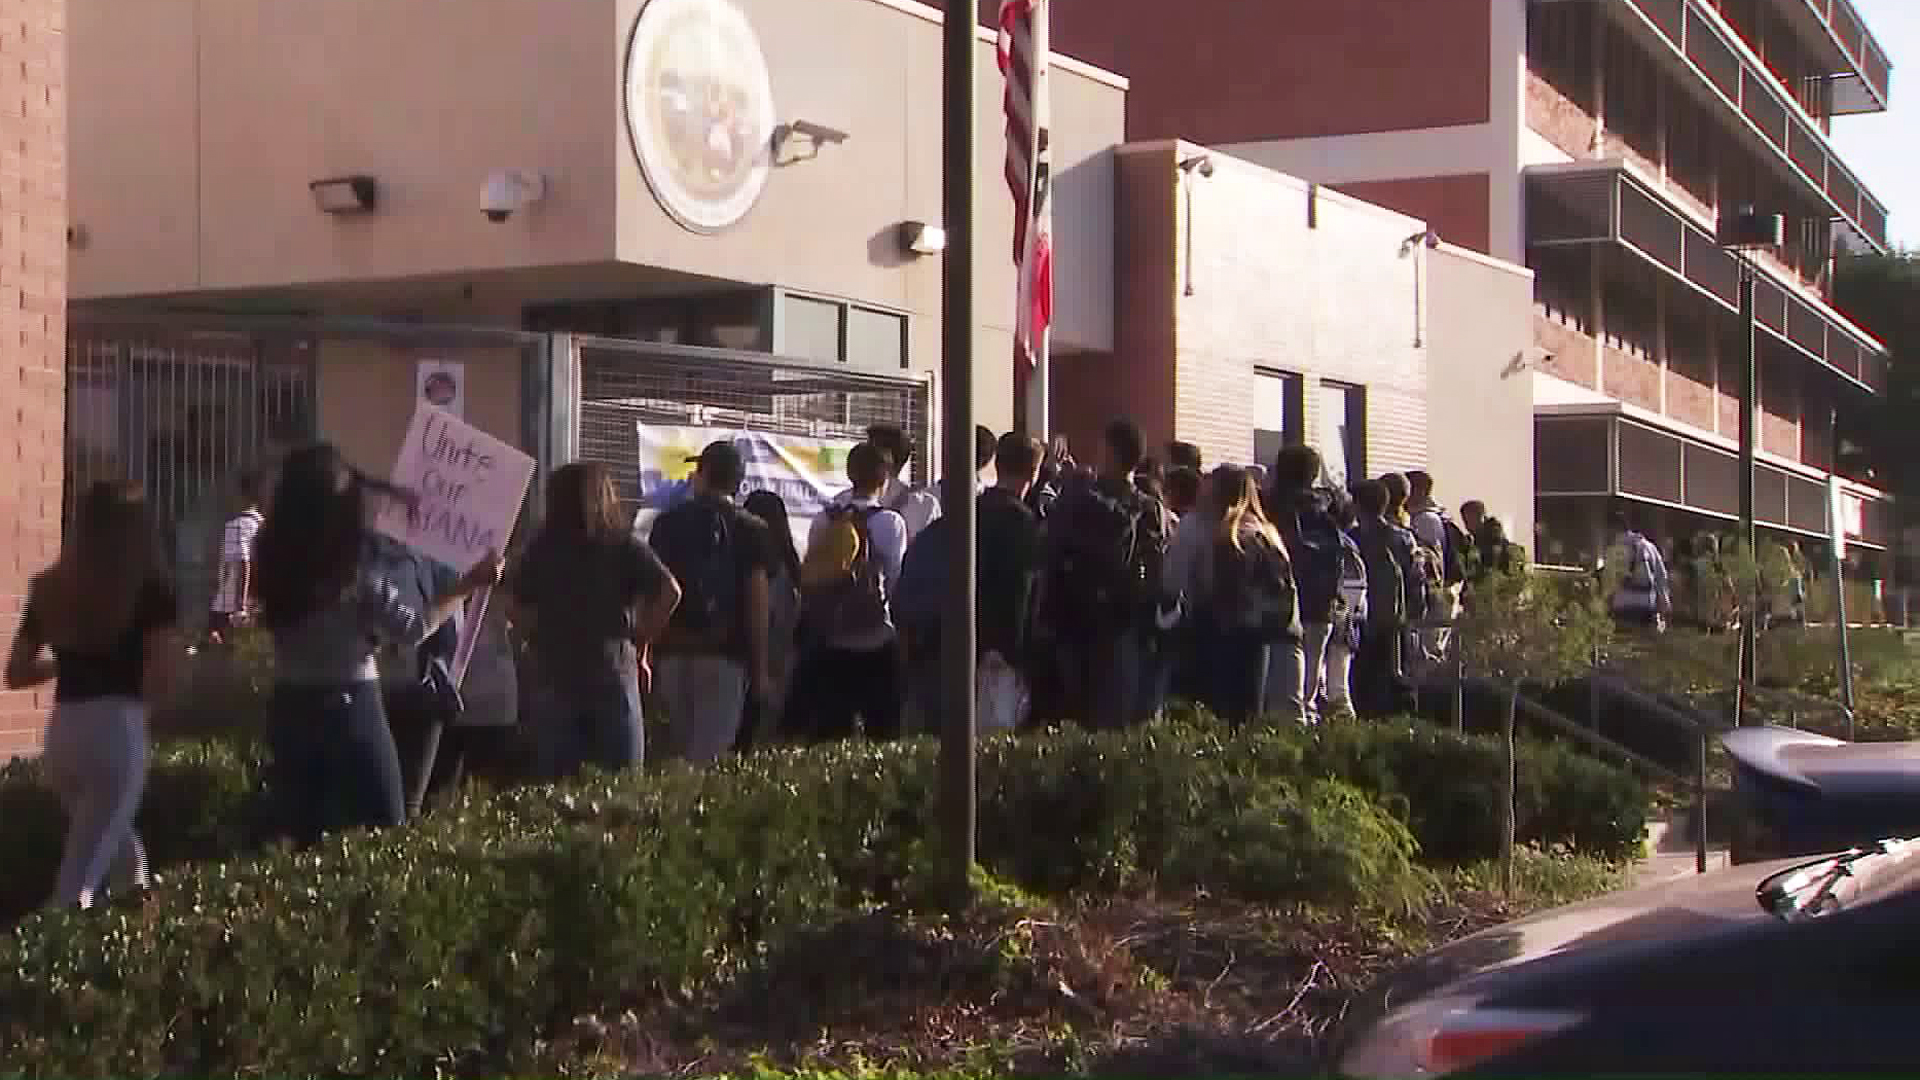 Hoover High School students stage a walkout on Oct. 29, 2018. (Credit: KTLA)